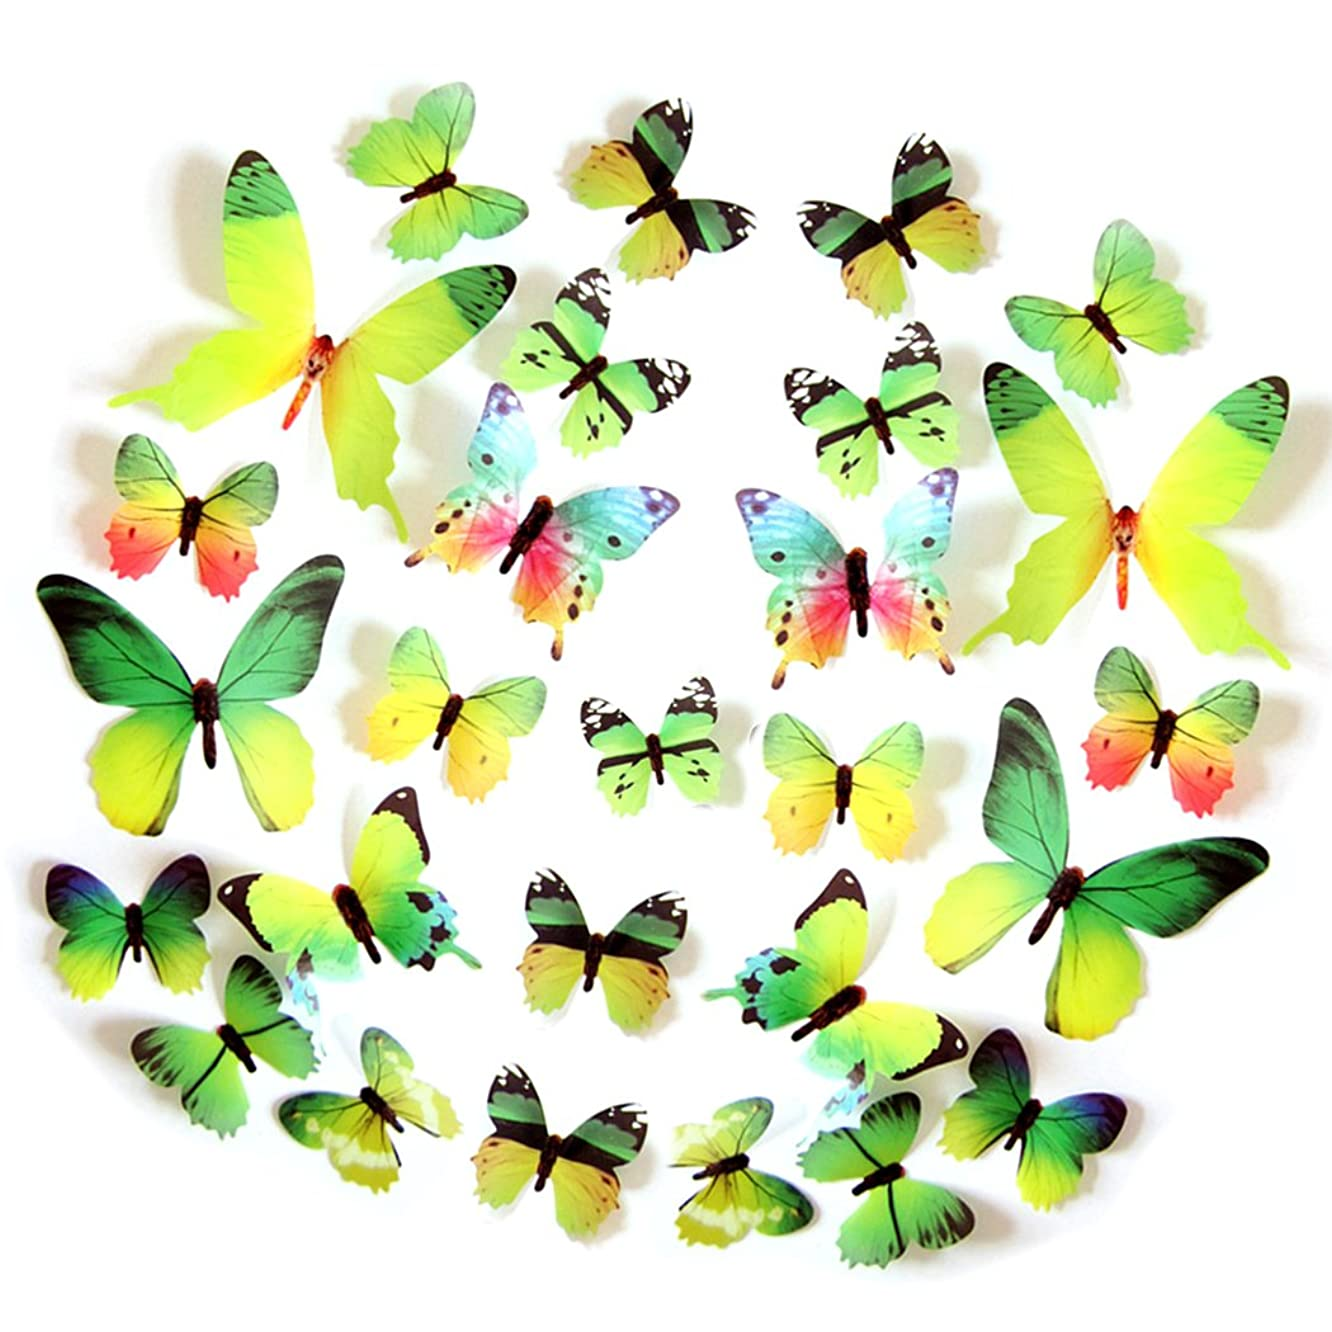 FLY SPRAY 24pcs Vivid Green Butterfly Mural Decor Removable Wall Stickers with Adhesive Decals Nursery Decoration 3D Crafts